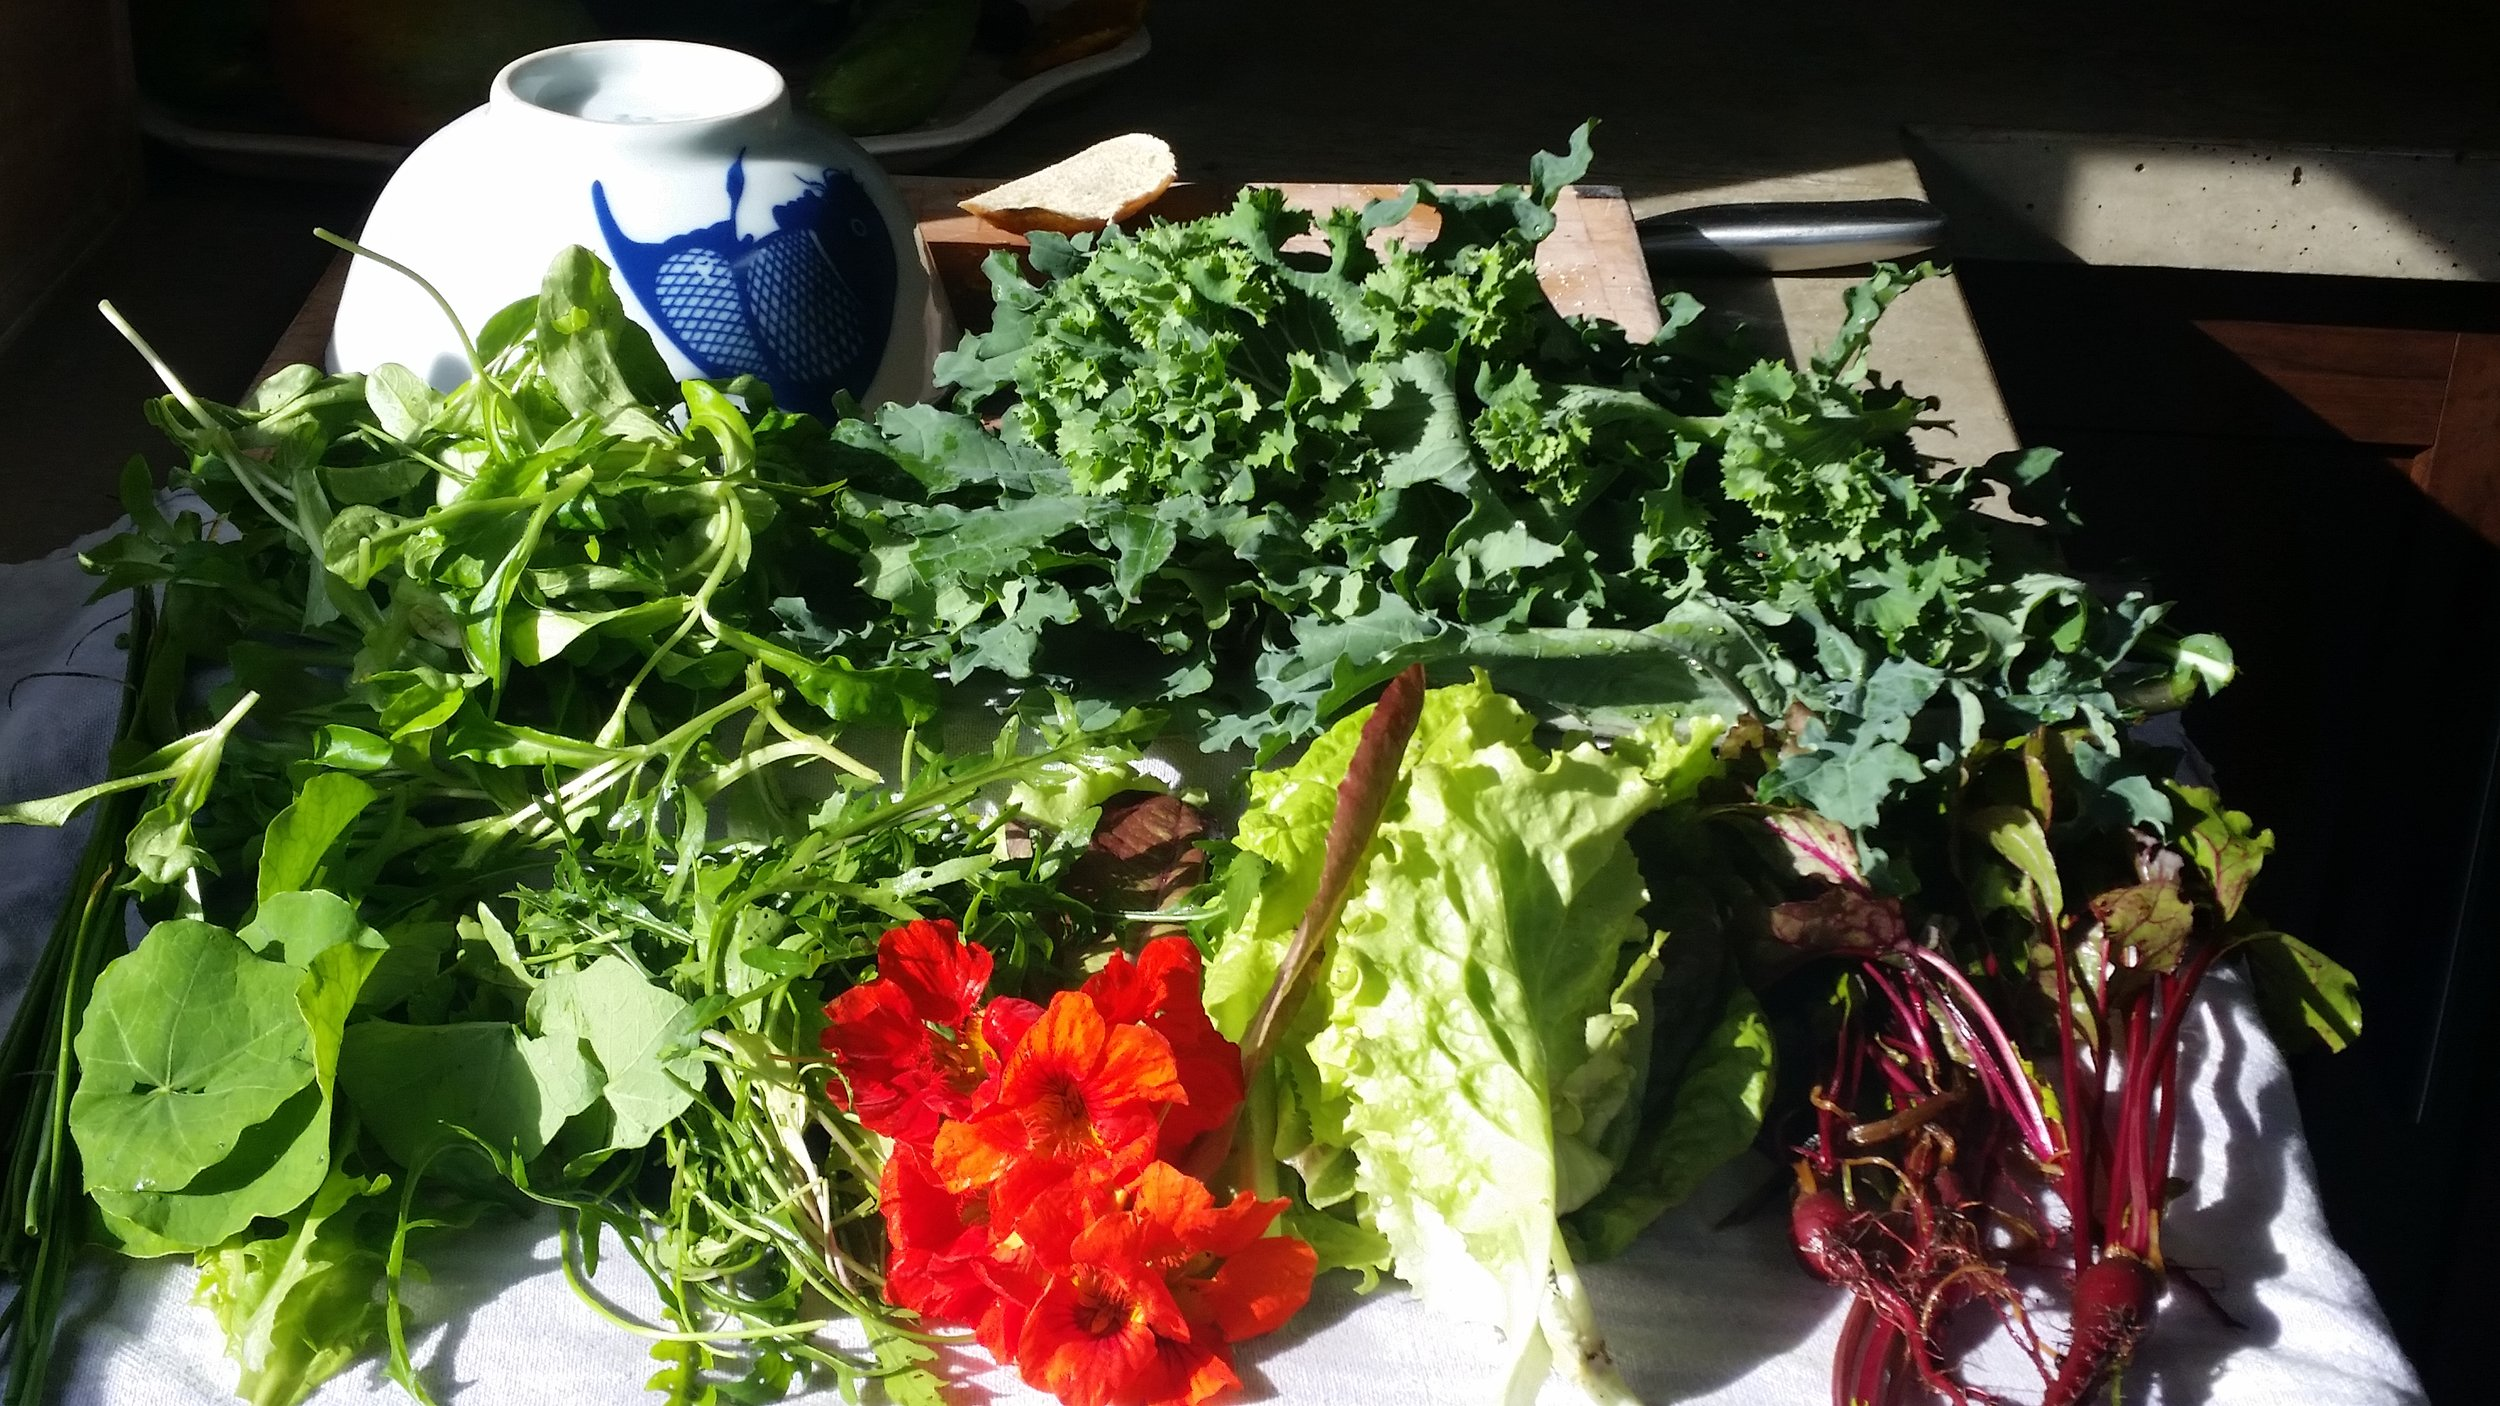 A friend and I harvested these nourishing greens in September.